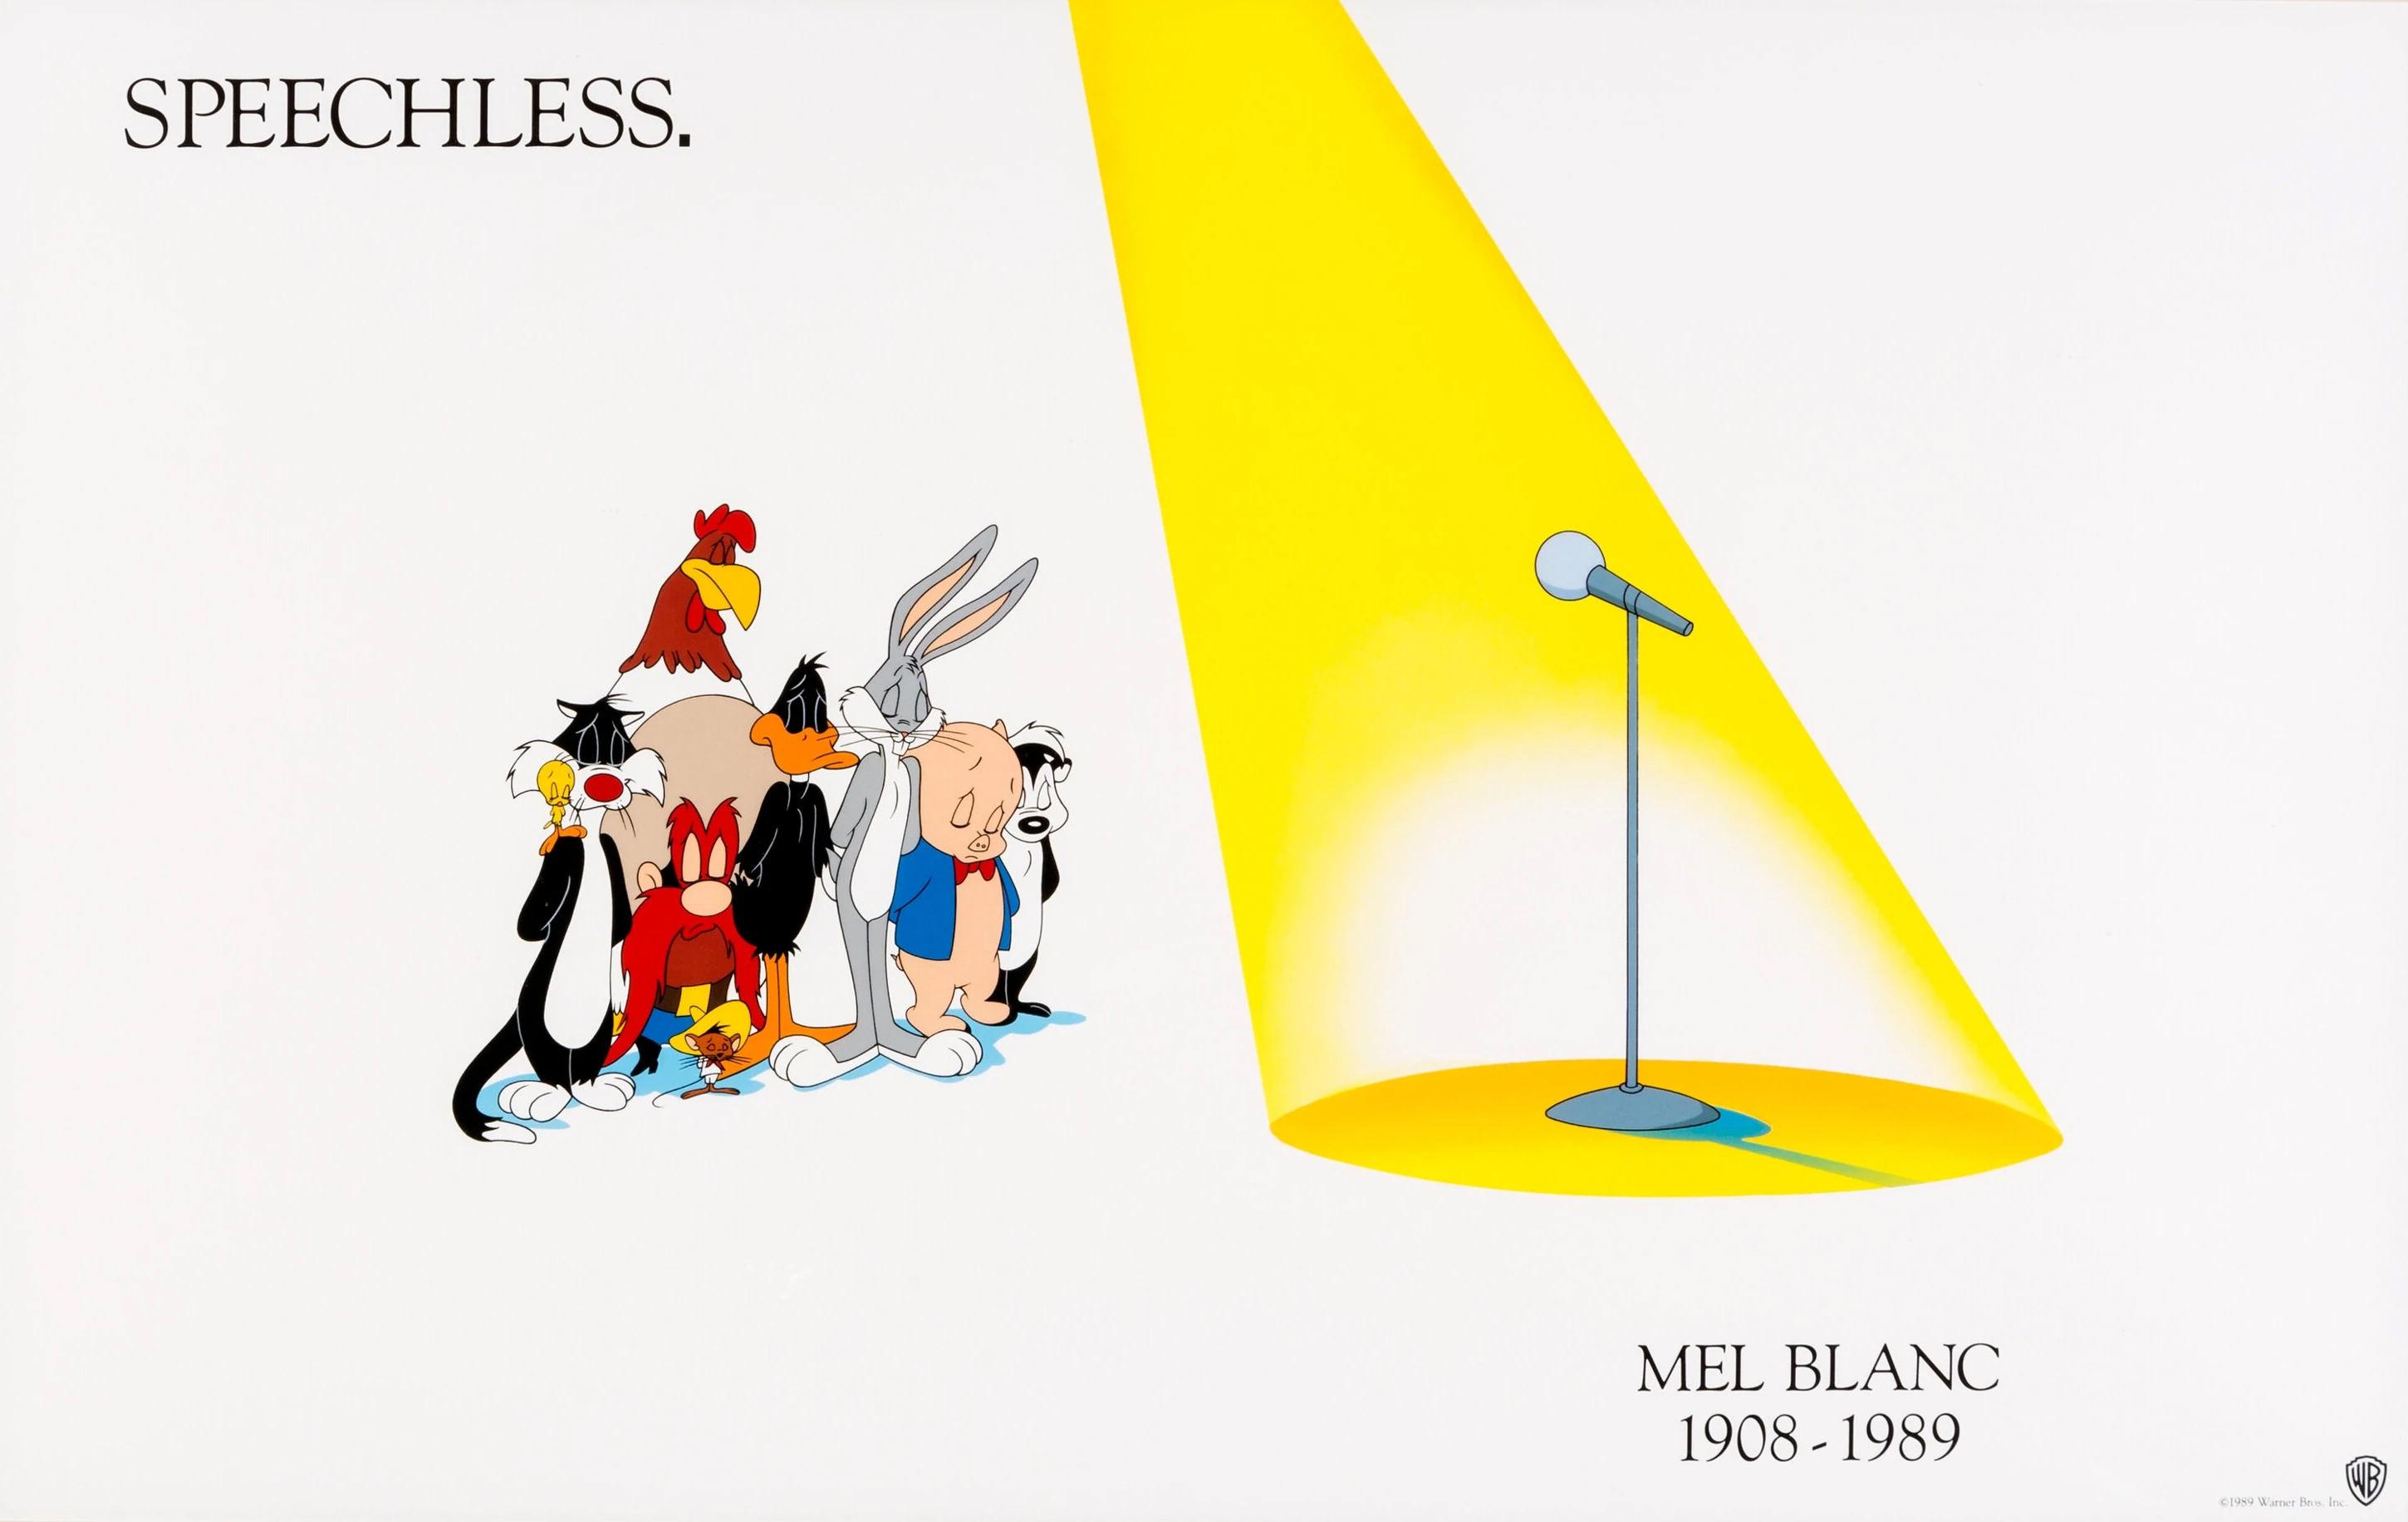 File:Speechless Tribute to Mel Blanc.jpg